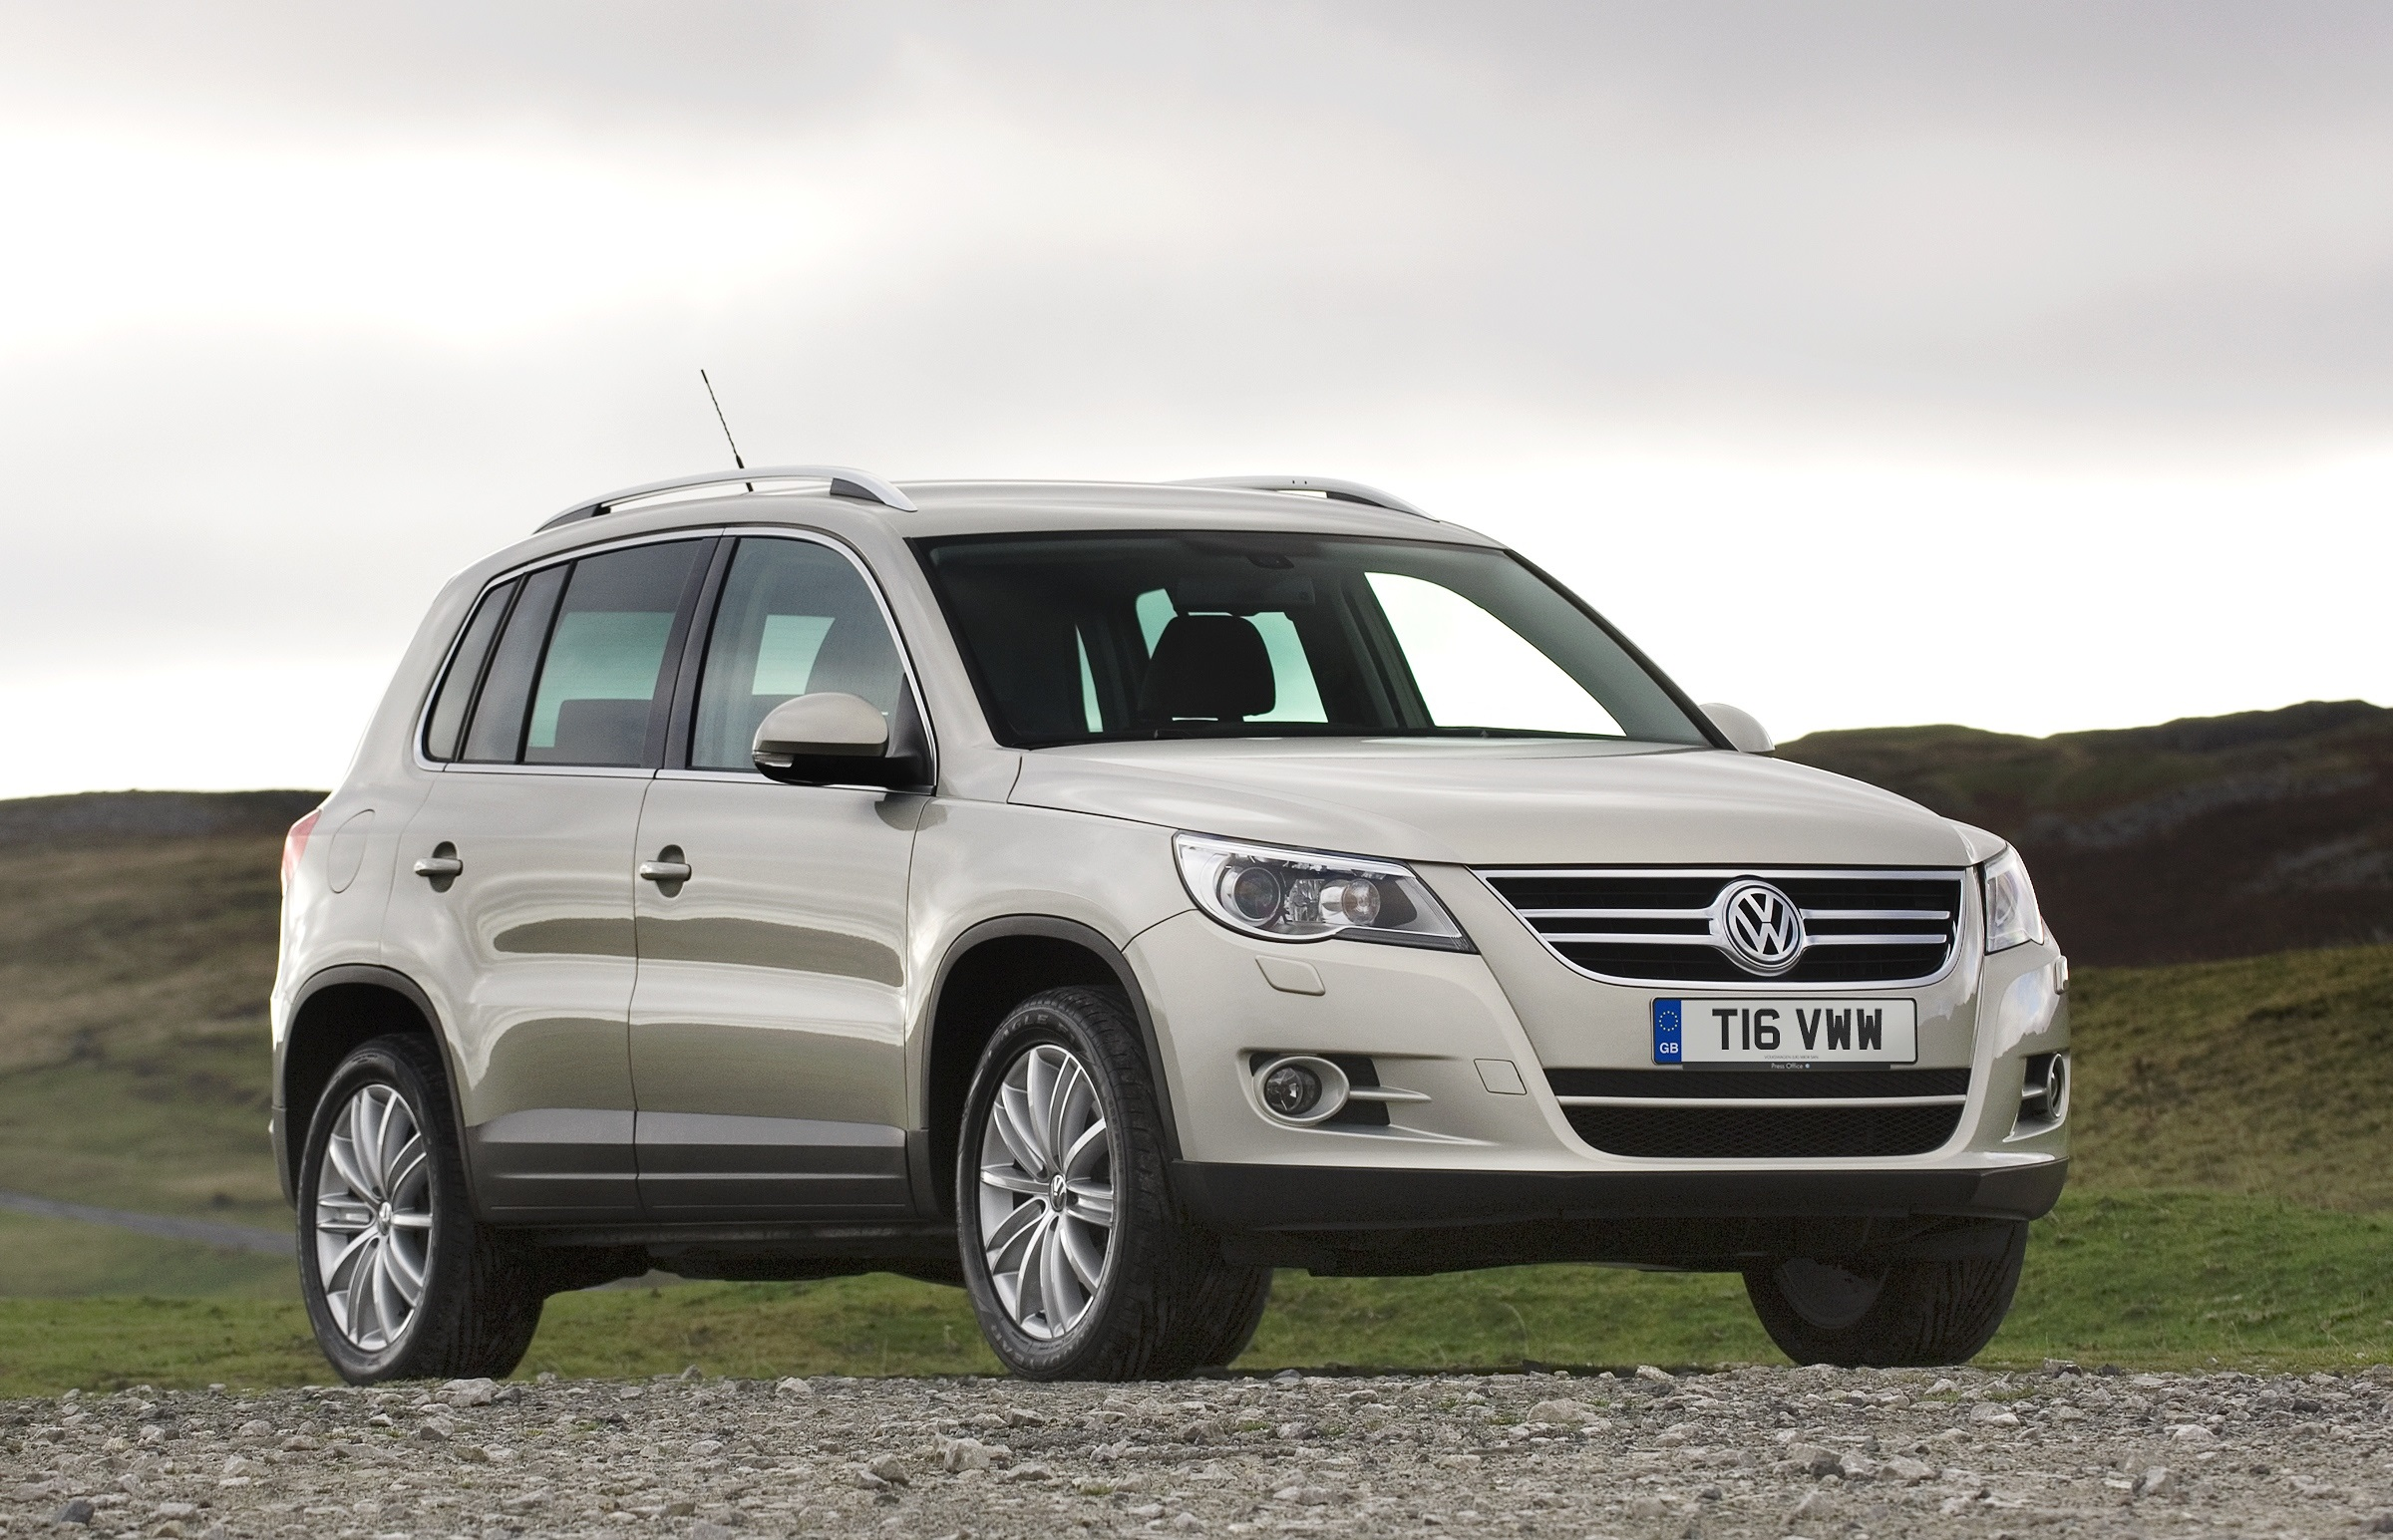 Volkswagen's Tiguan is solidly made and good to drive